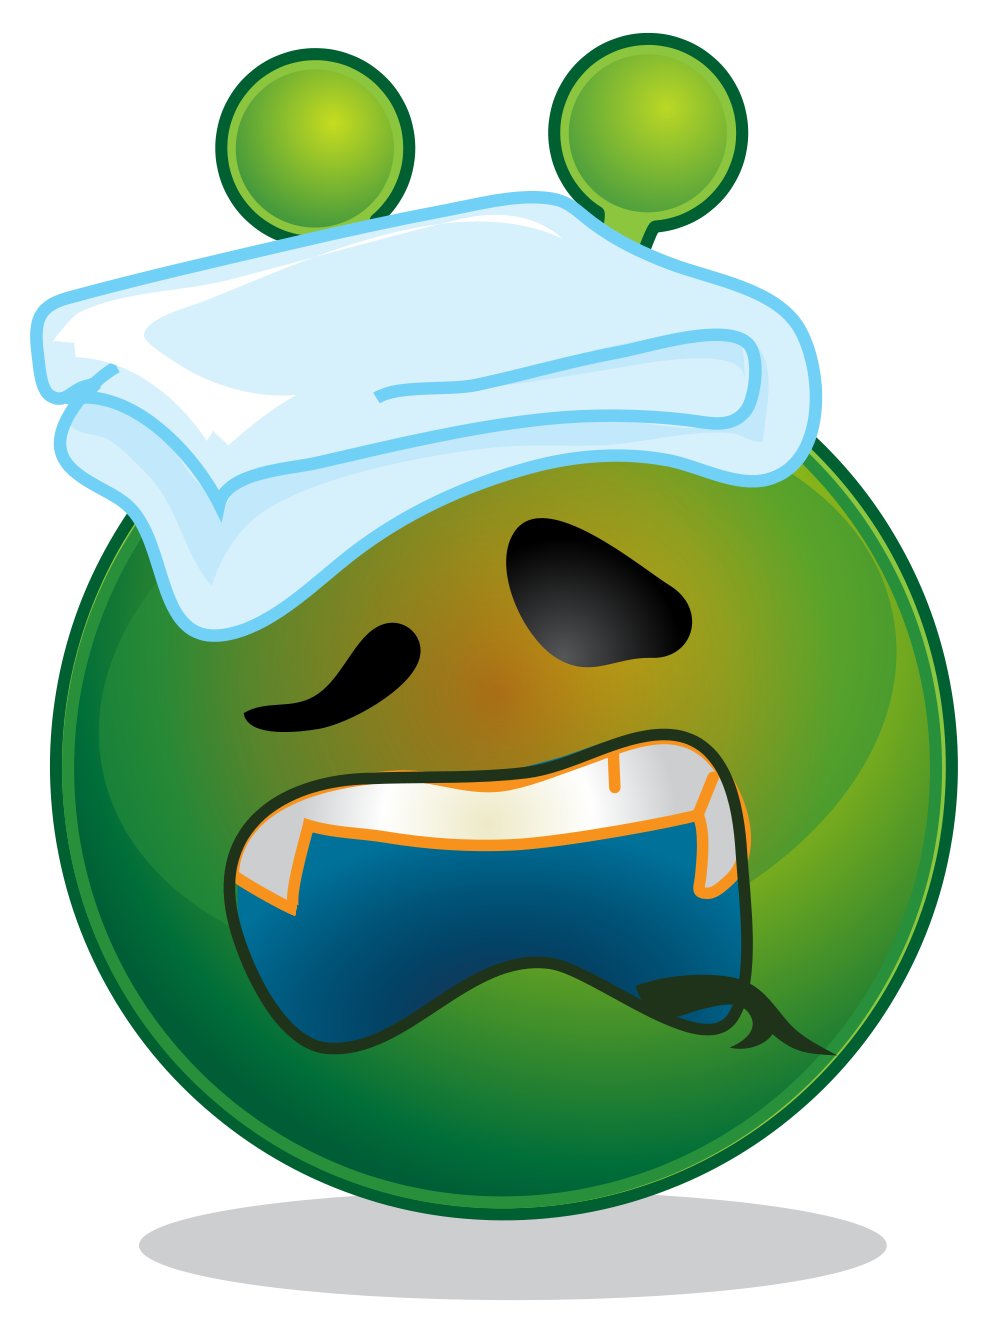 File:Smiley green alien sick.svg.